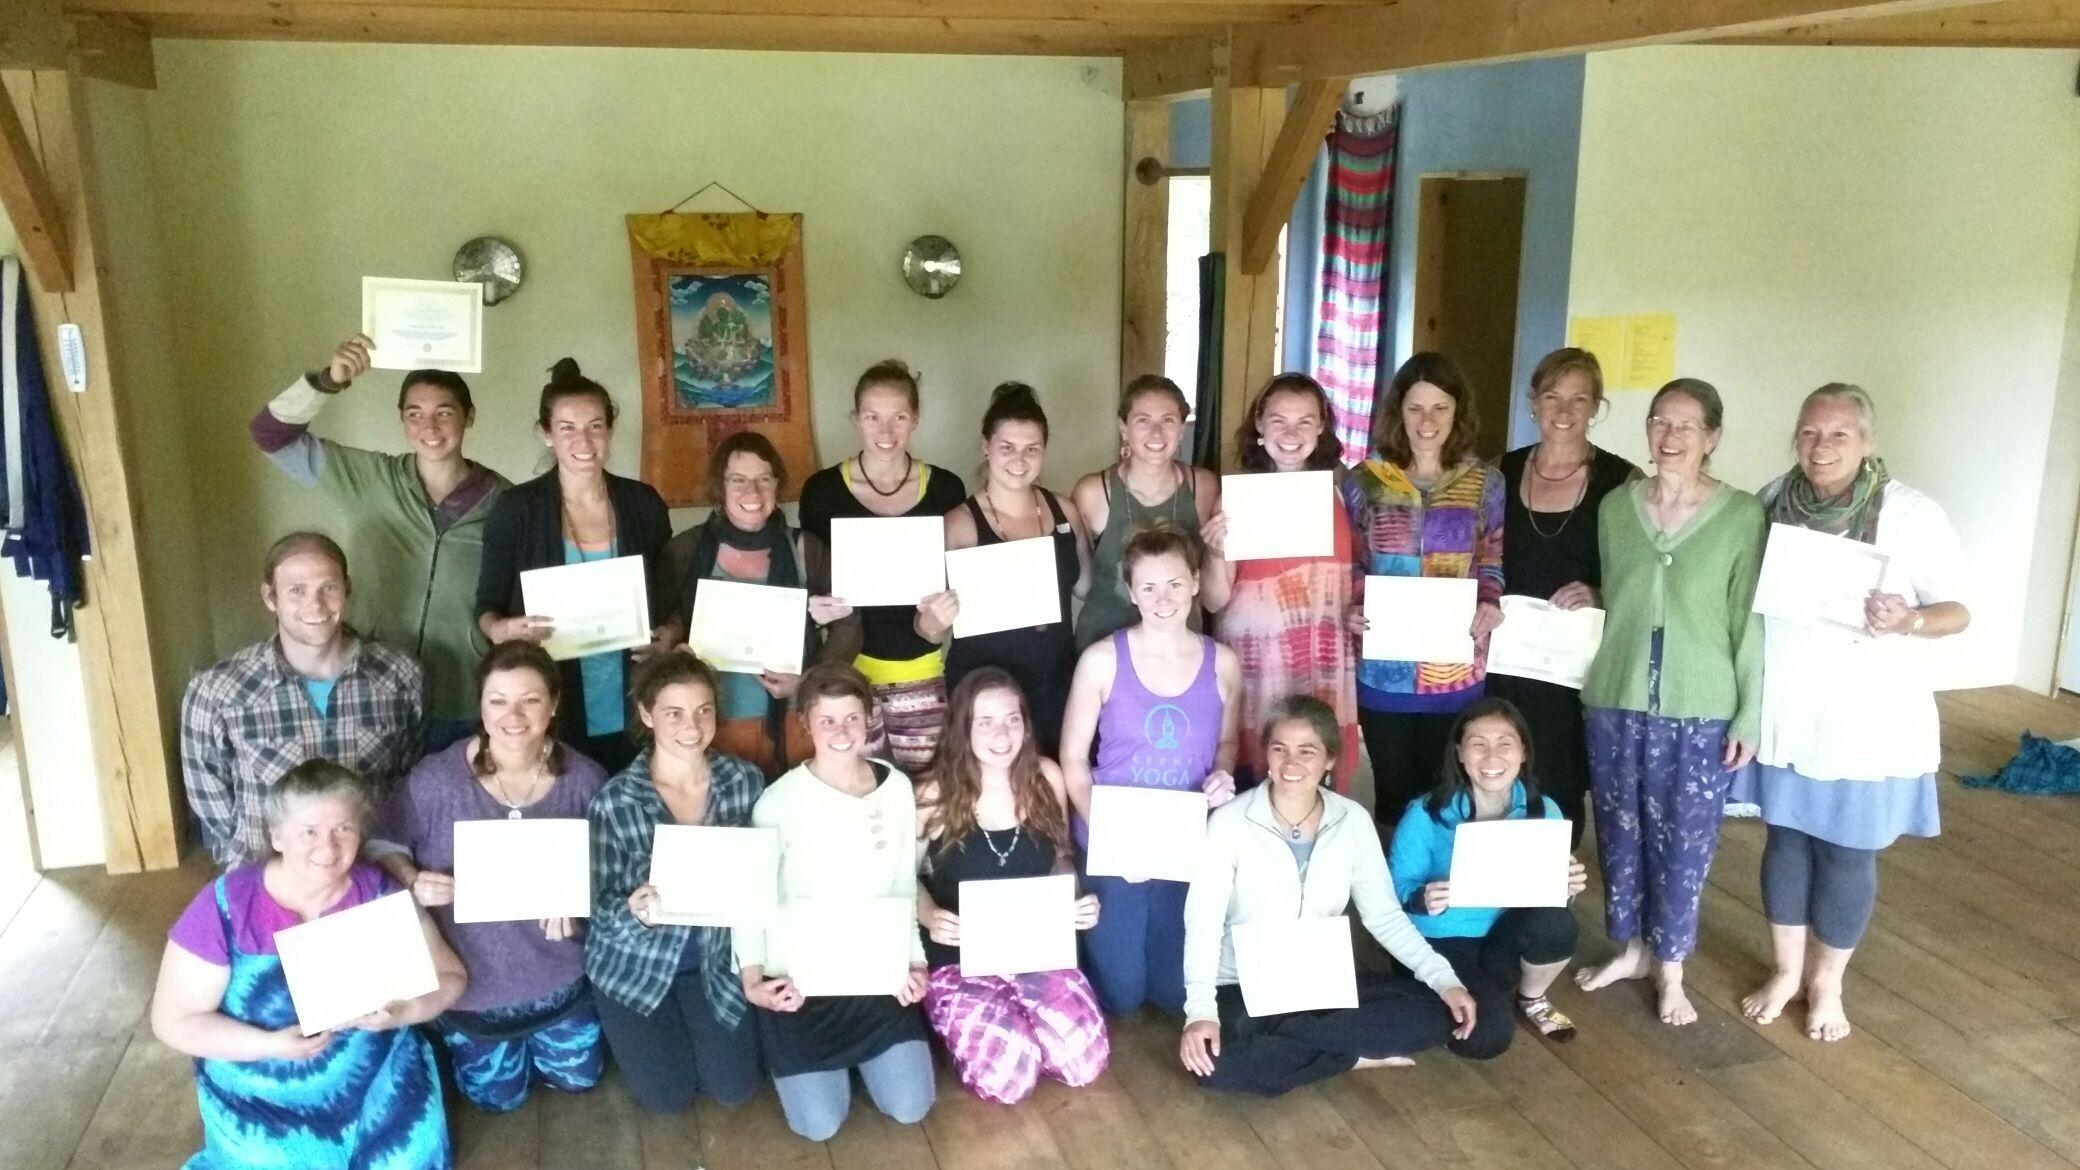 Sadhana Yoga School New Hampshire Program... my 1st Shadowing with SYS.